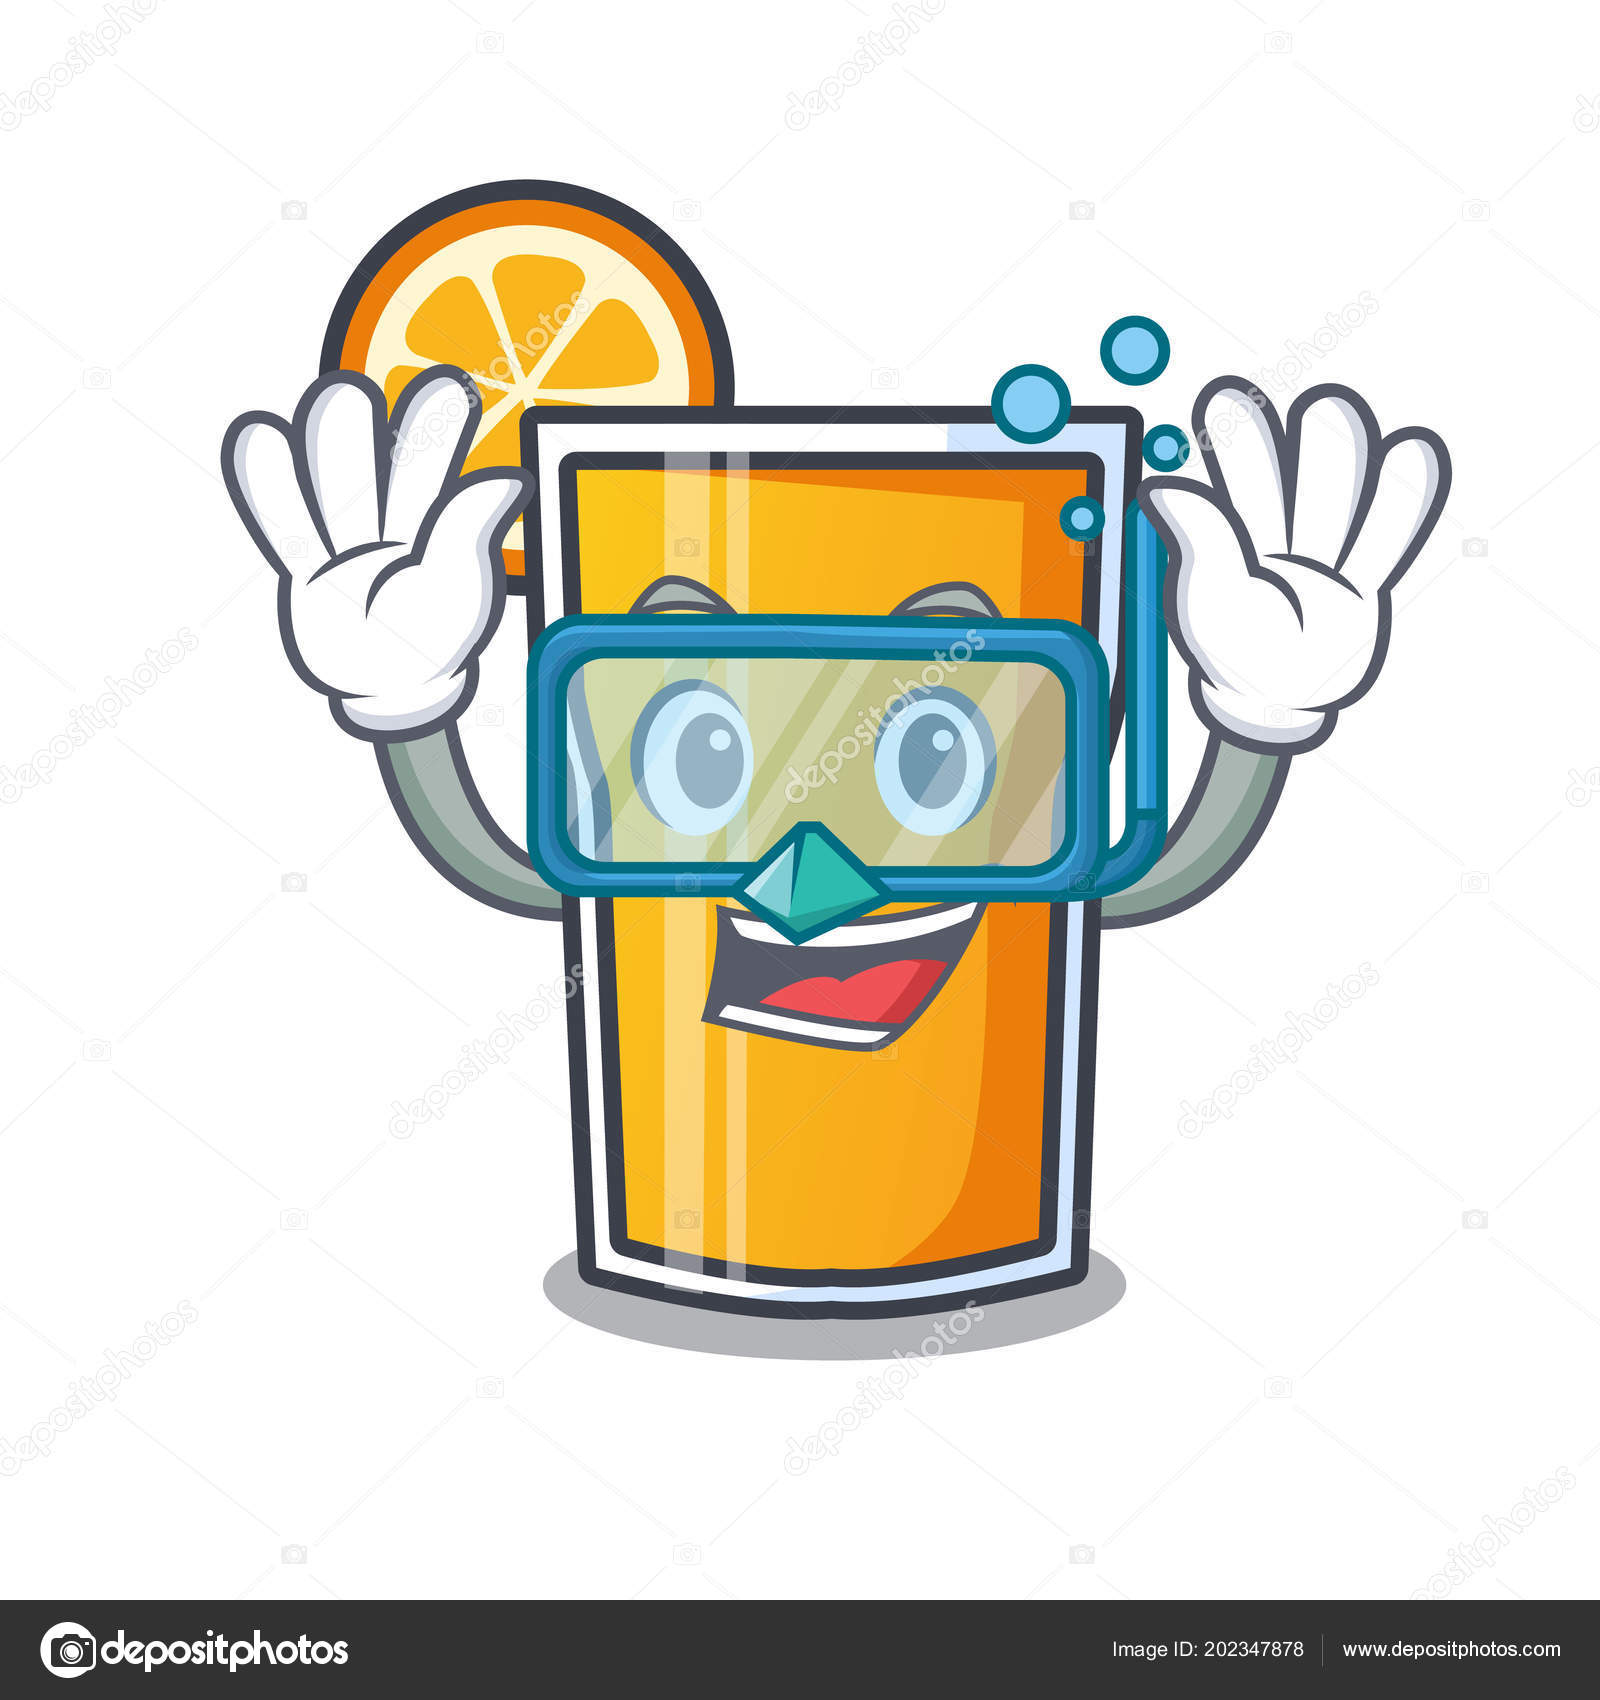 Cartoon Küche Aufräumen Tauchen Orangensaft Charakter Cartoon Stockvektor Kongvector